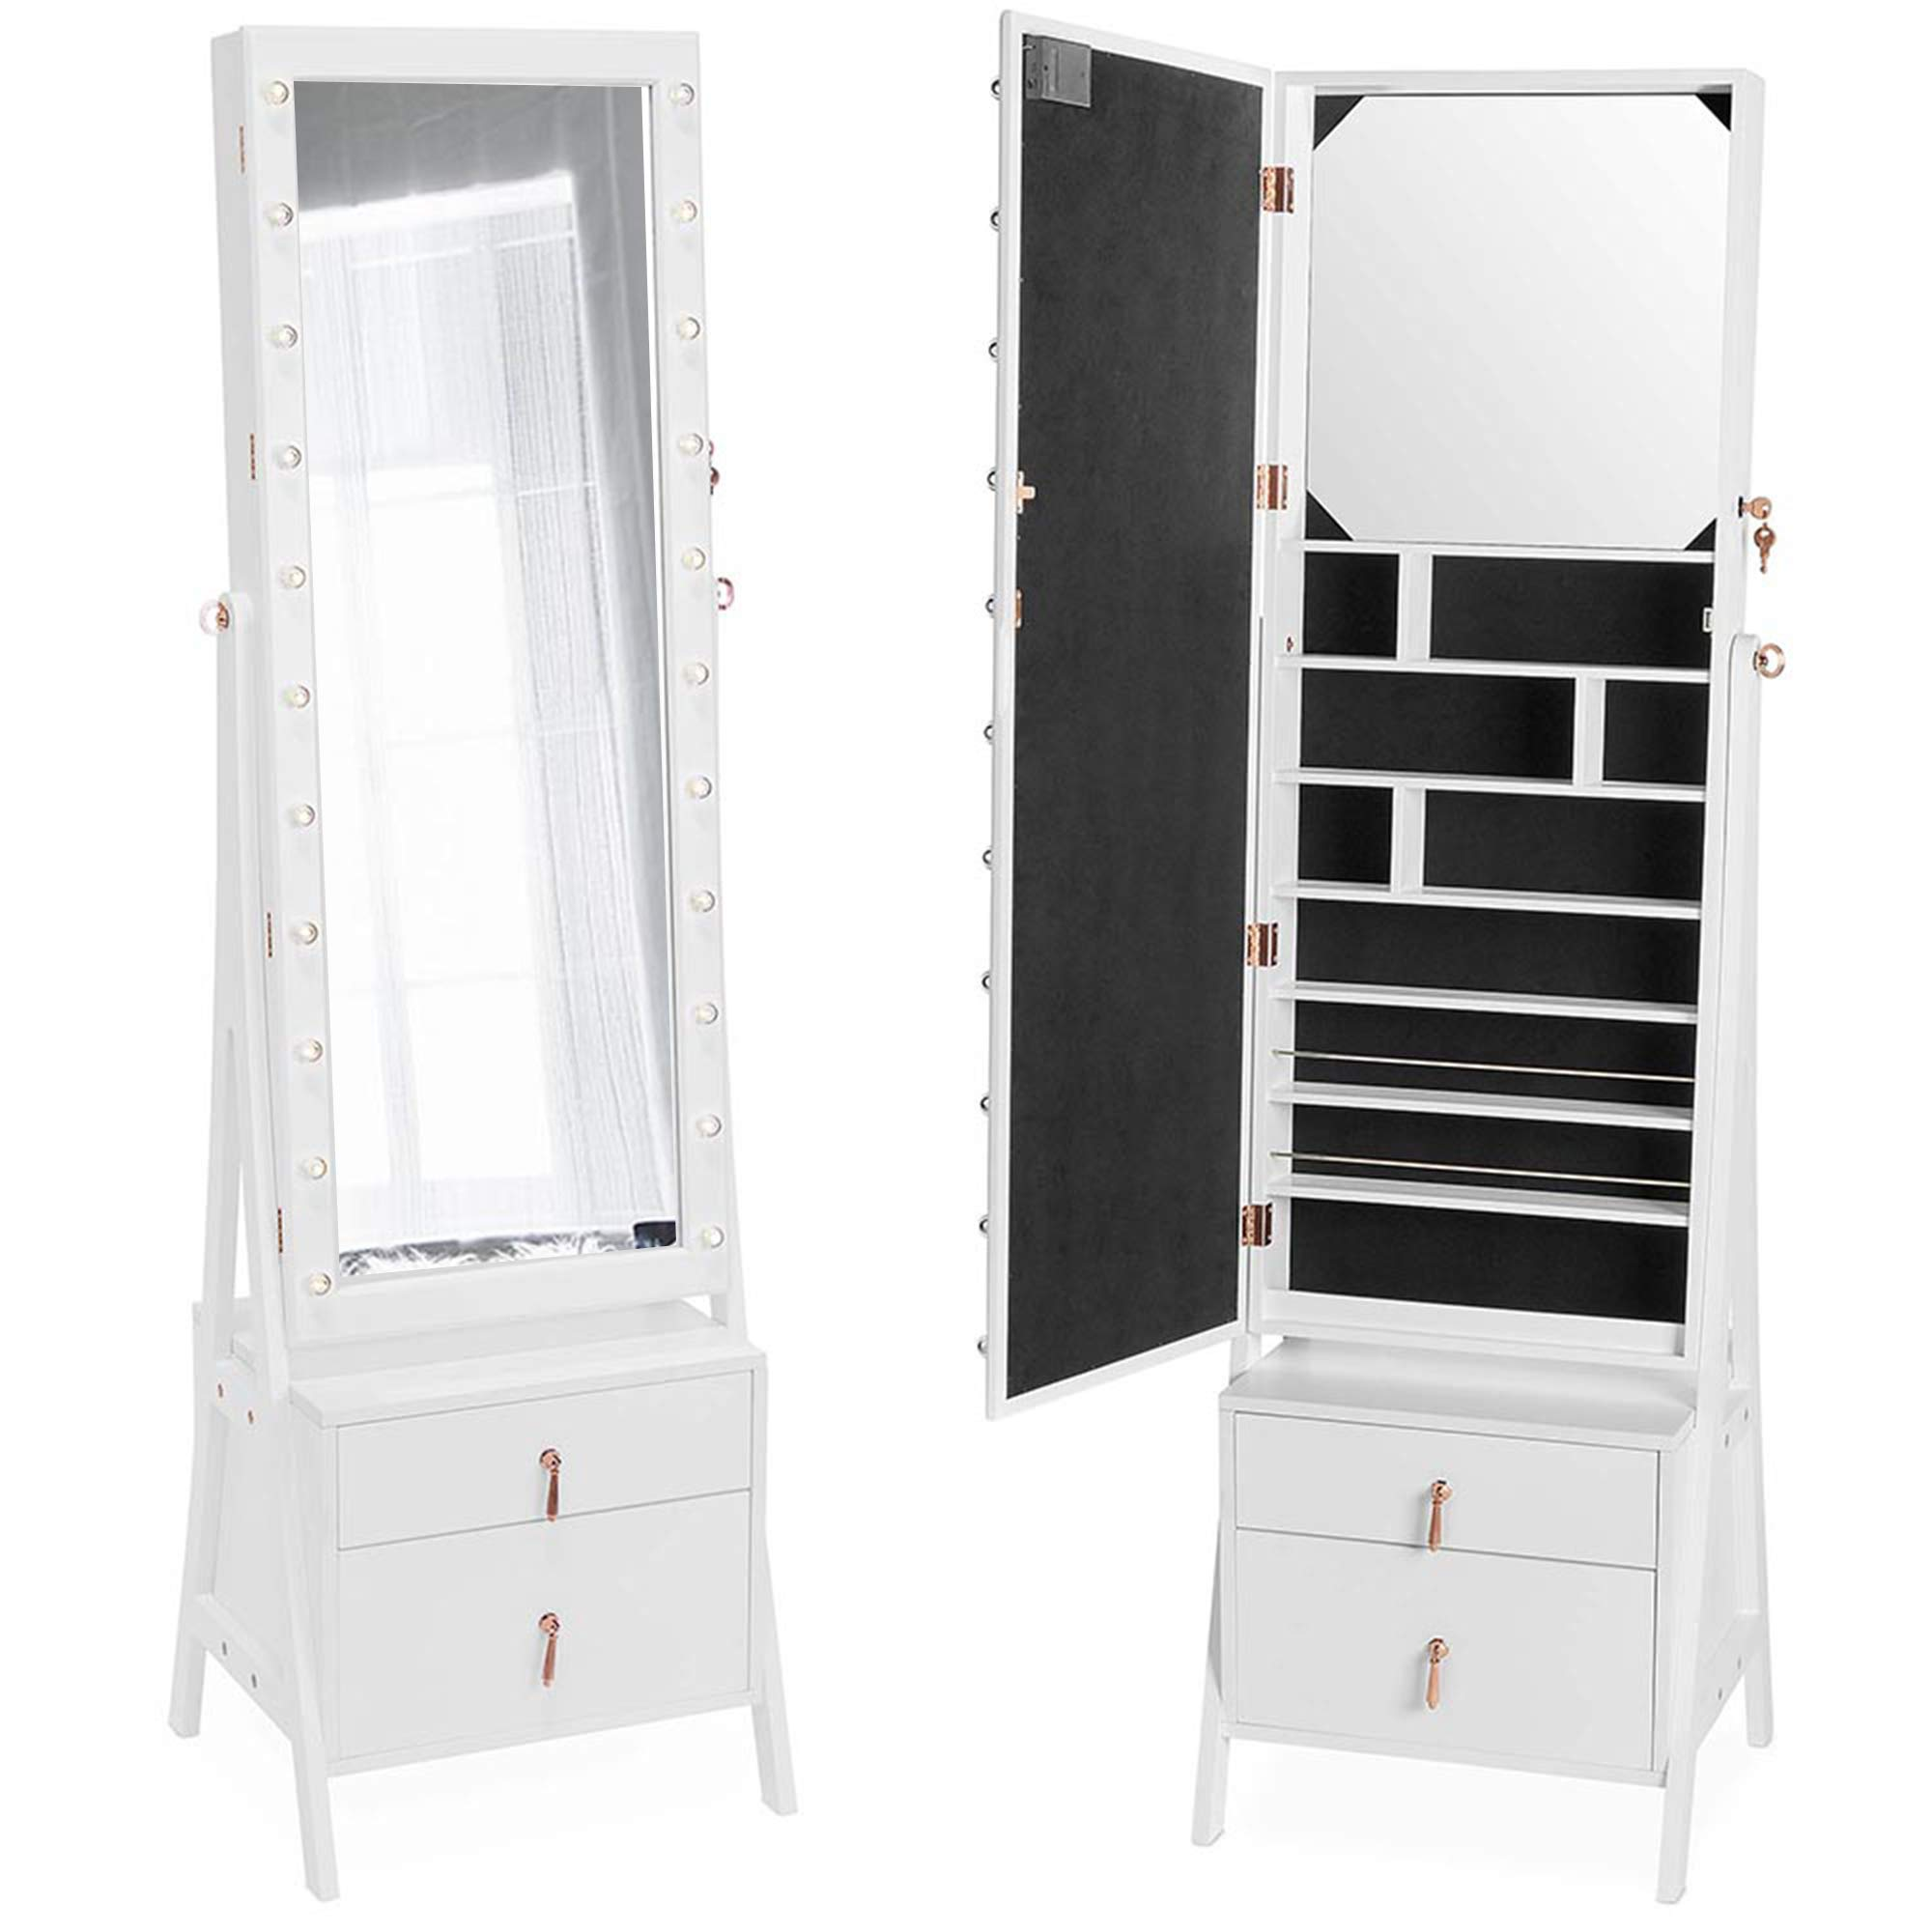 Beautify Lockable Floor Standing Make Up and Jewelry Cabinet Organizer Armoire Storage with 2 Drawer, Inside Mirror & LED Warm Lights (White Illuminated)